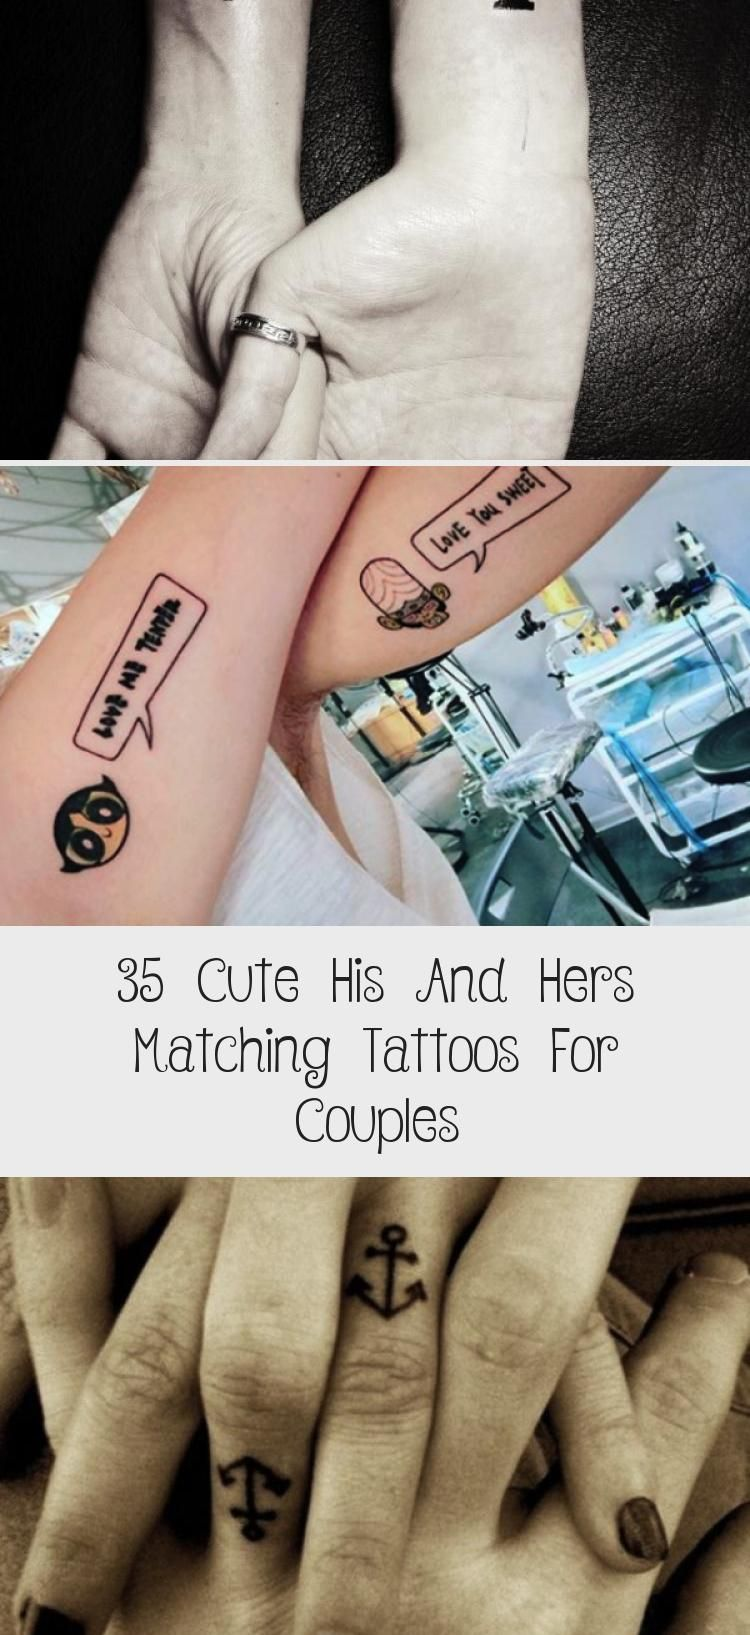 35 Cute His And Hers Matching Tattoos For Couples